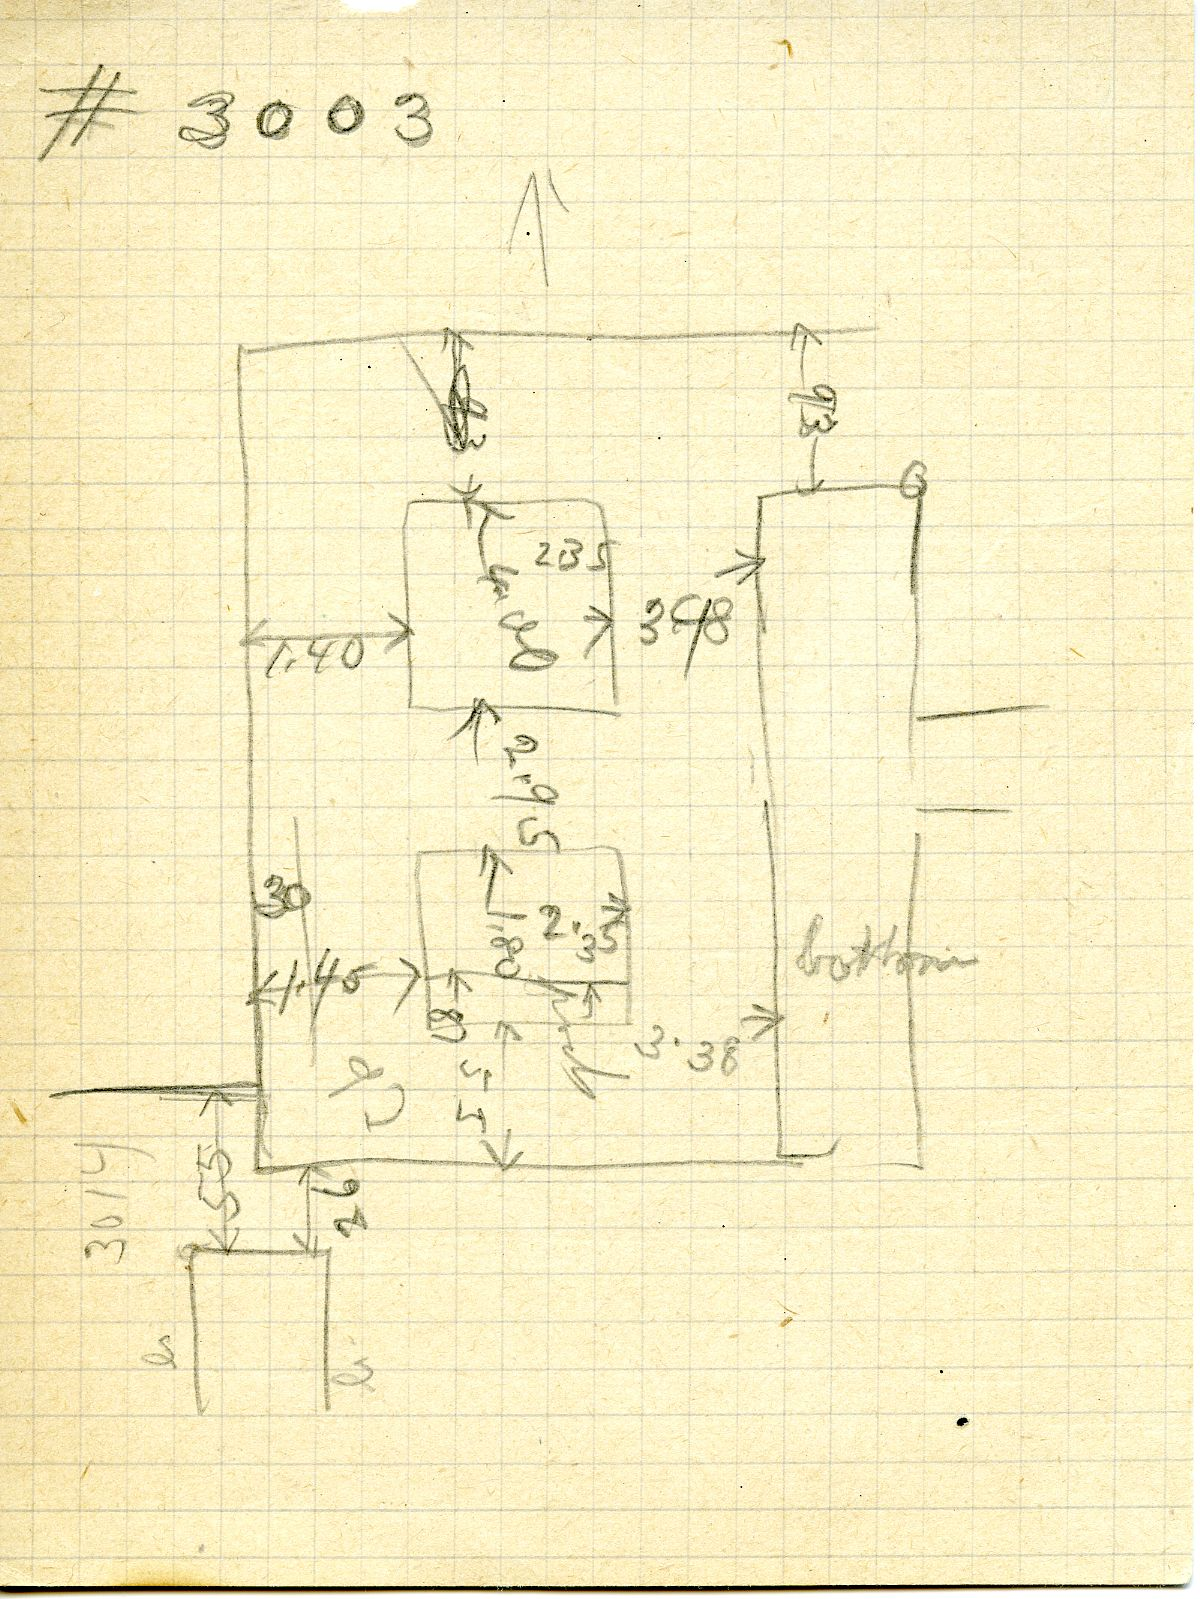 Maps and plans: G 3003, Sketch Plan